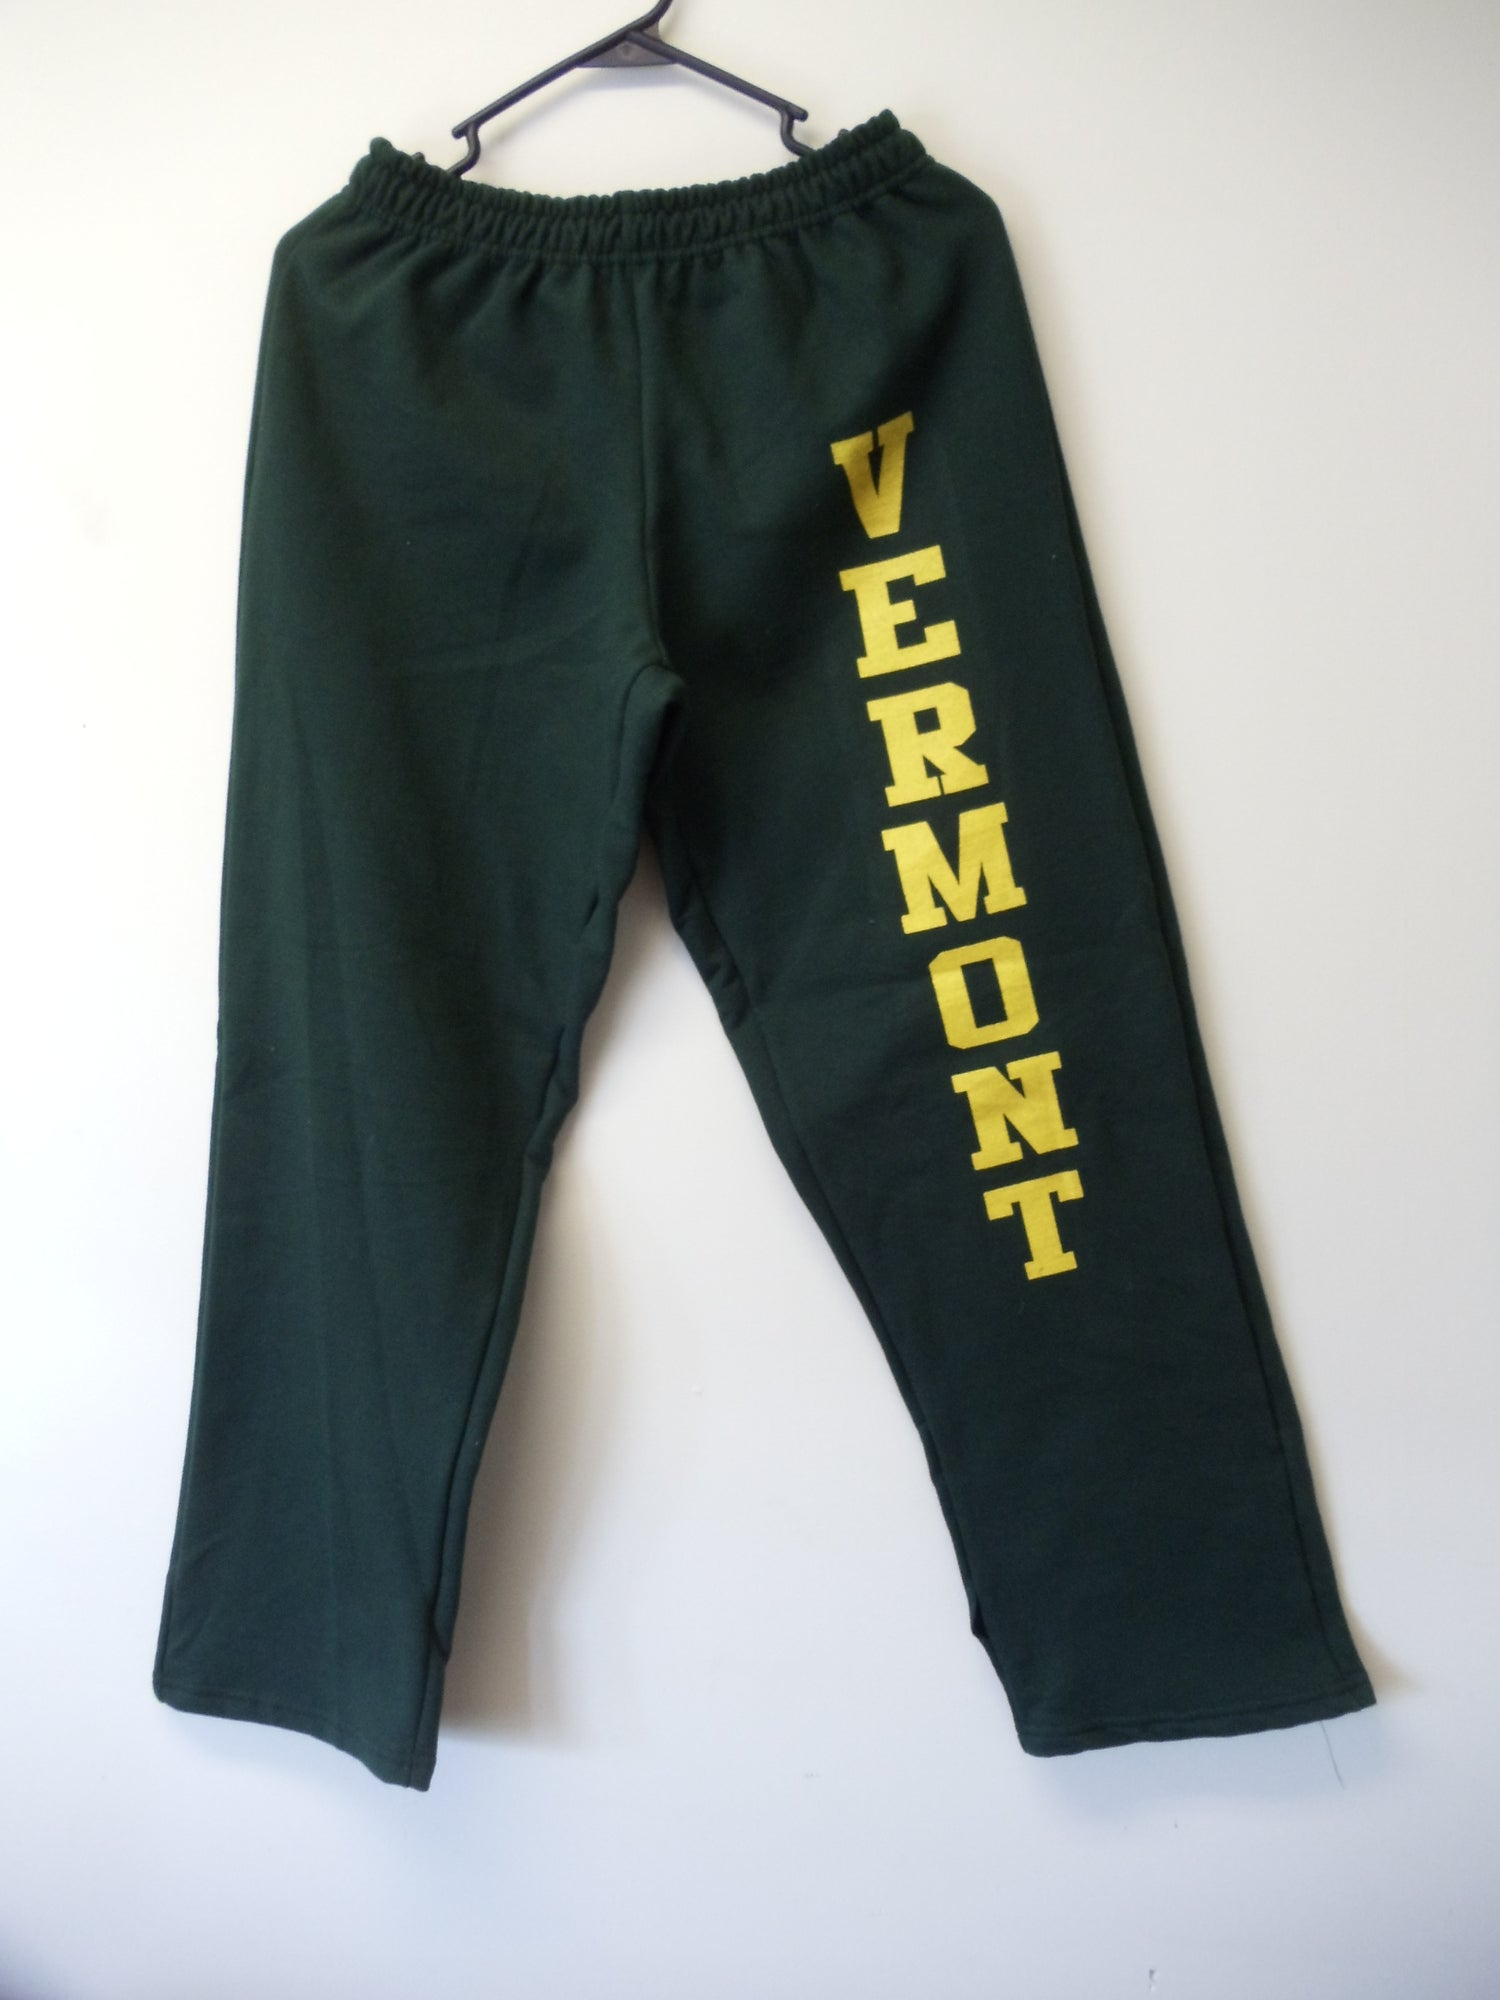 Image of Vermont Sweatpants 8oz - Gold on Green VT Sweats - Vermont clothing - 802 clothing - 802 store